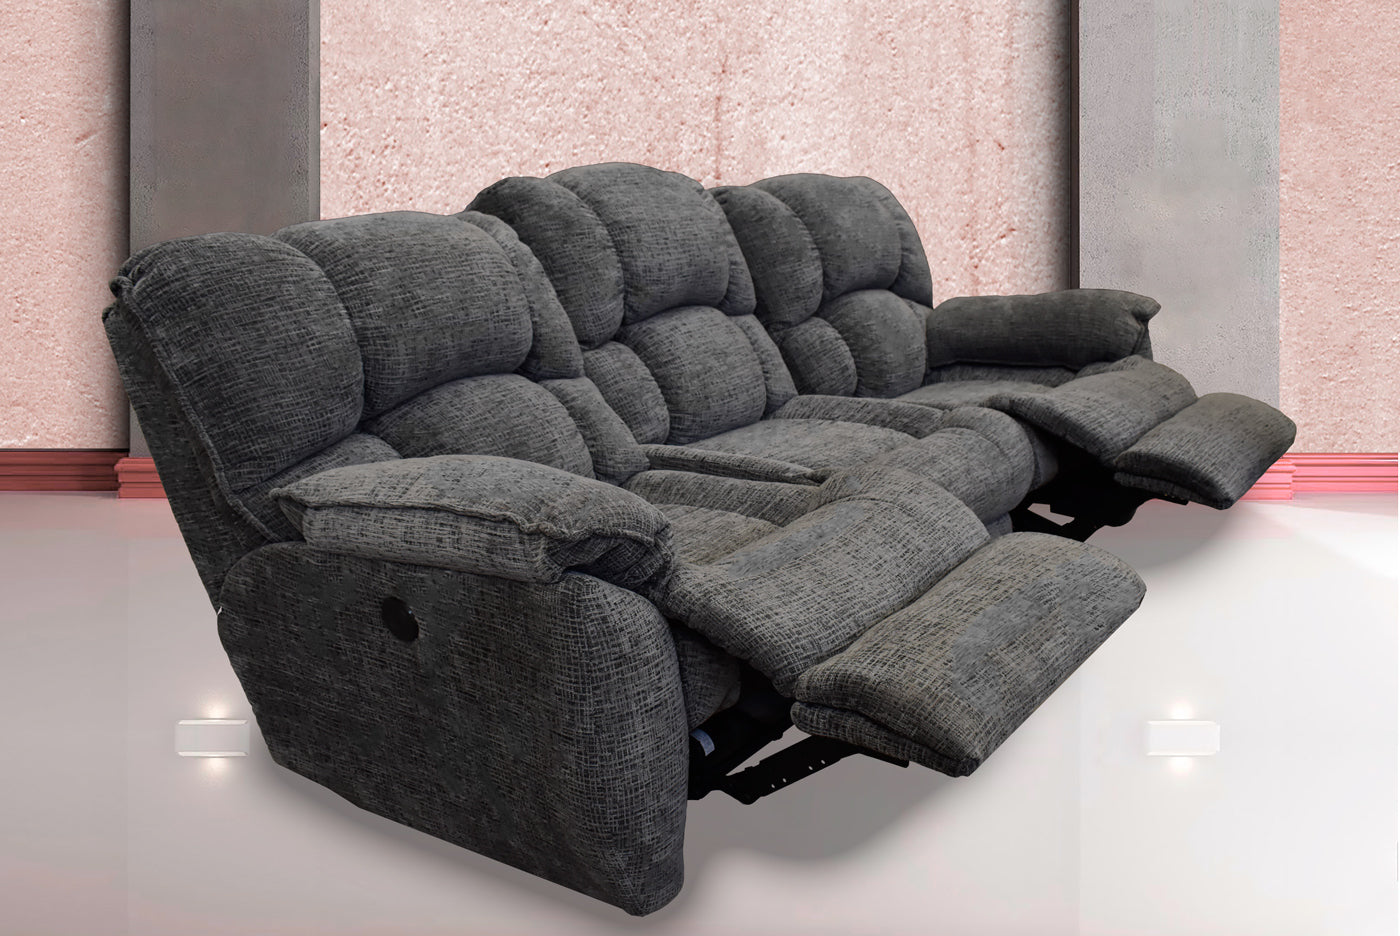 SOFA 739 RECLINABLE ELECTRICO BOARDWALK GREY - Muebles Troncoso